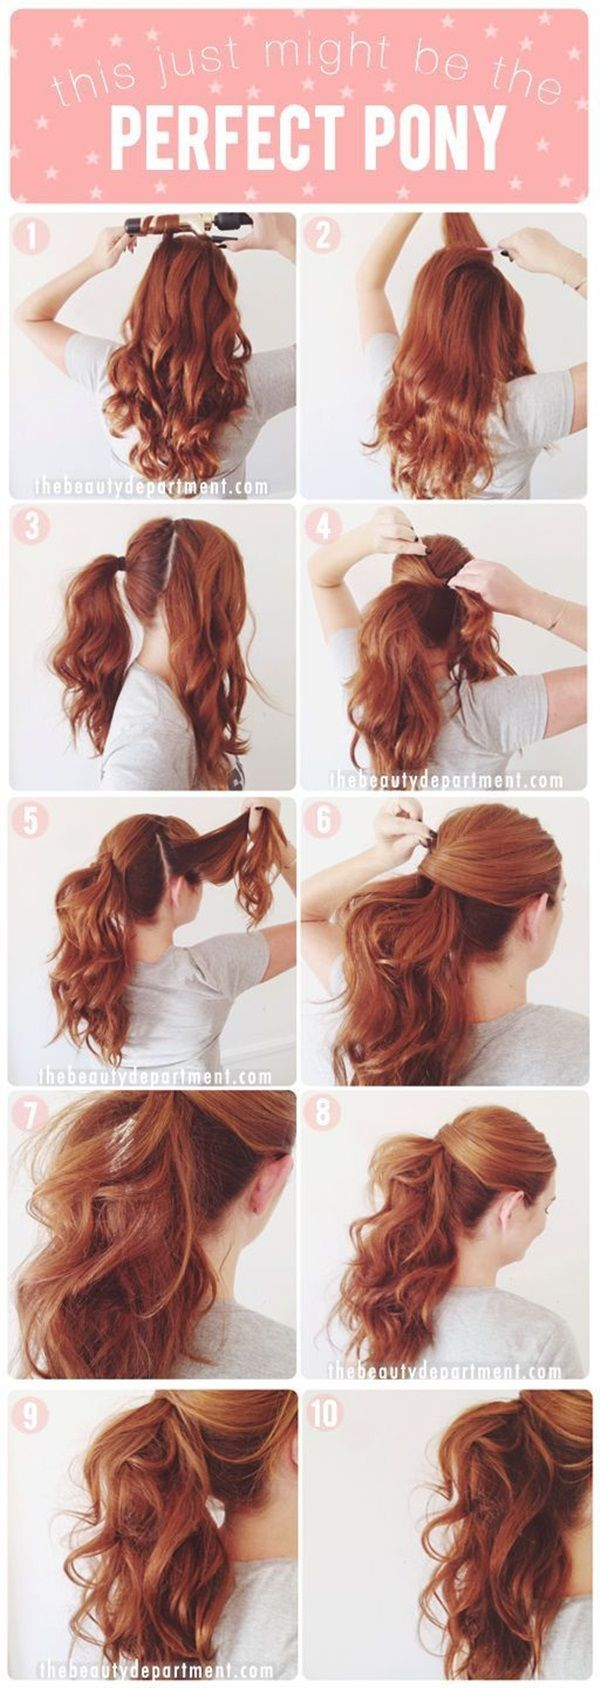 Strange 1000 Ideas About Diy Hairstyles On Pinterest Easy Diy Short Hairstyles For Black Women Fulllsitofus